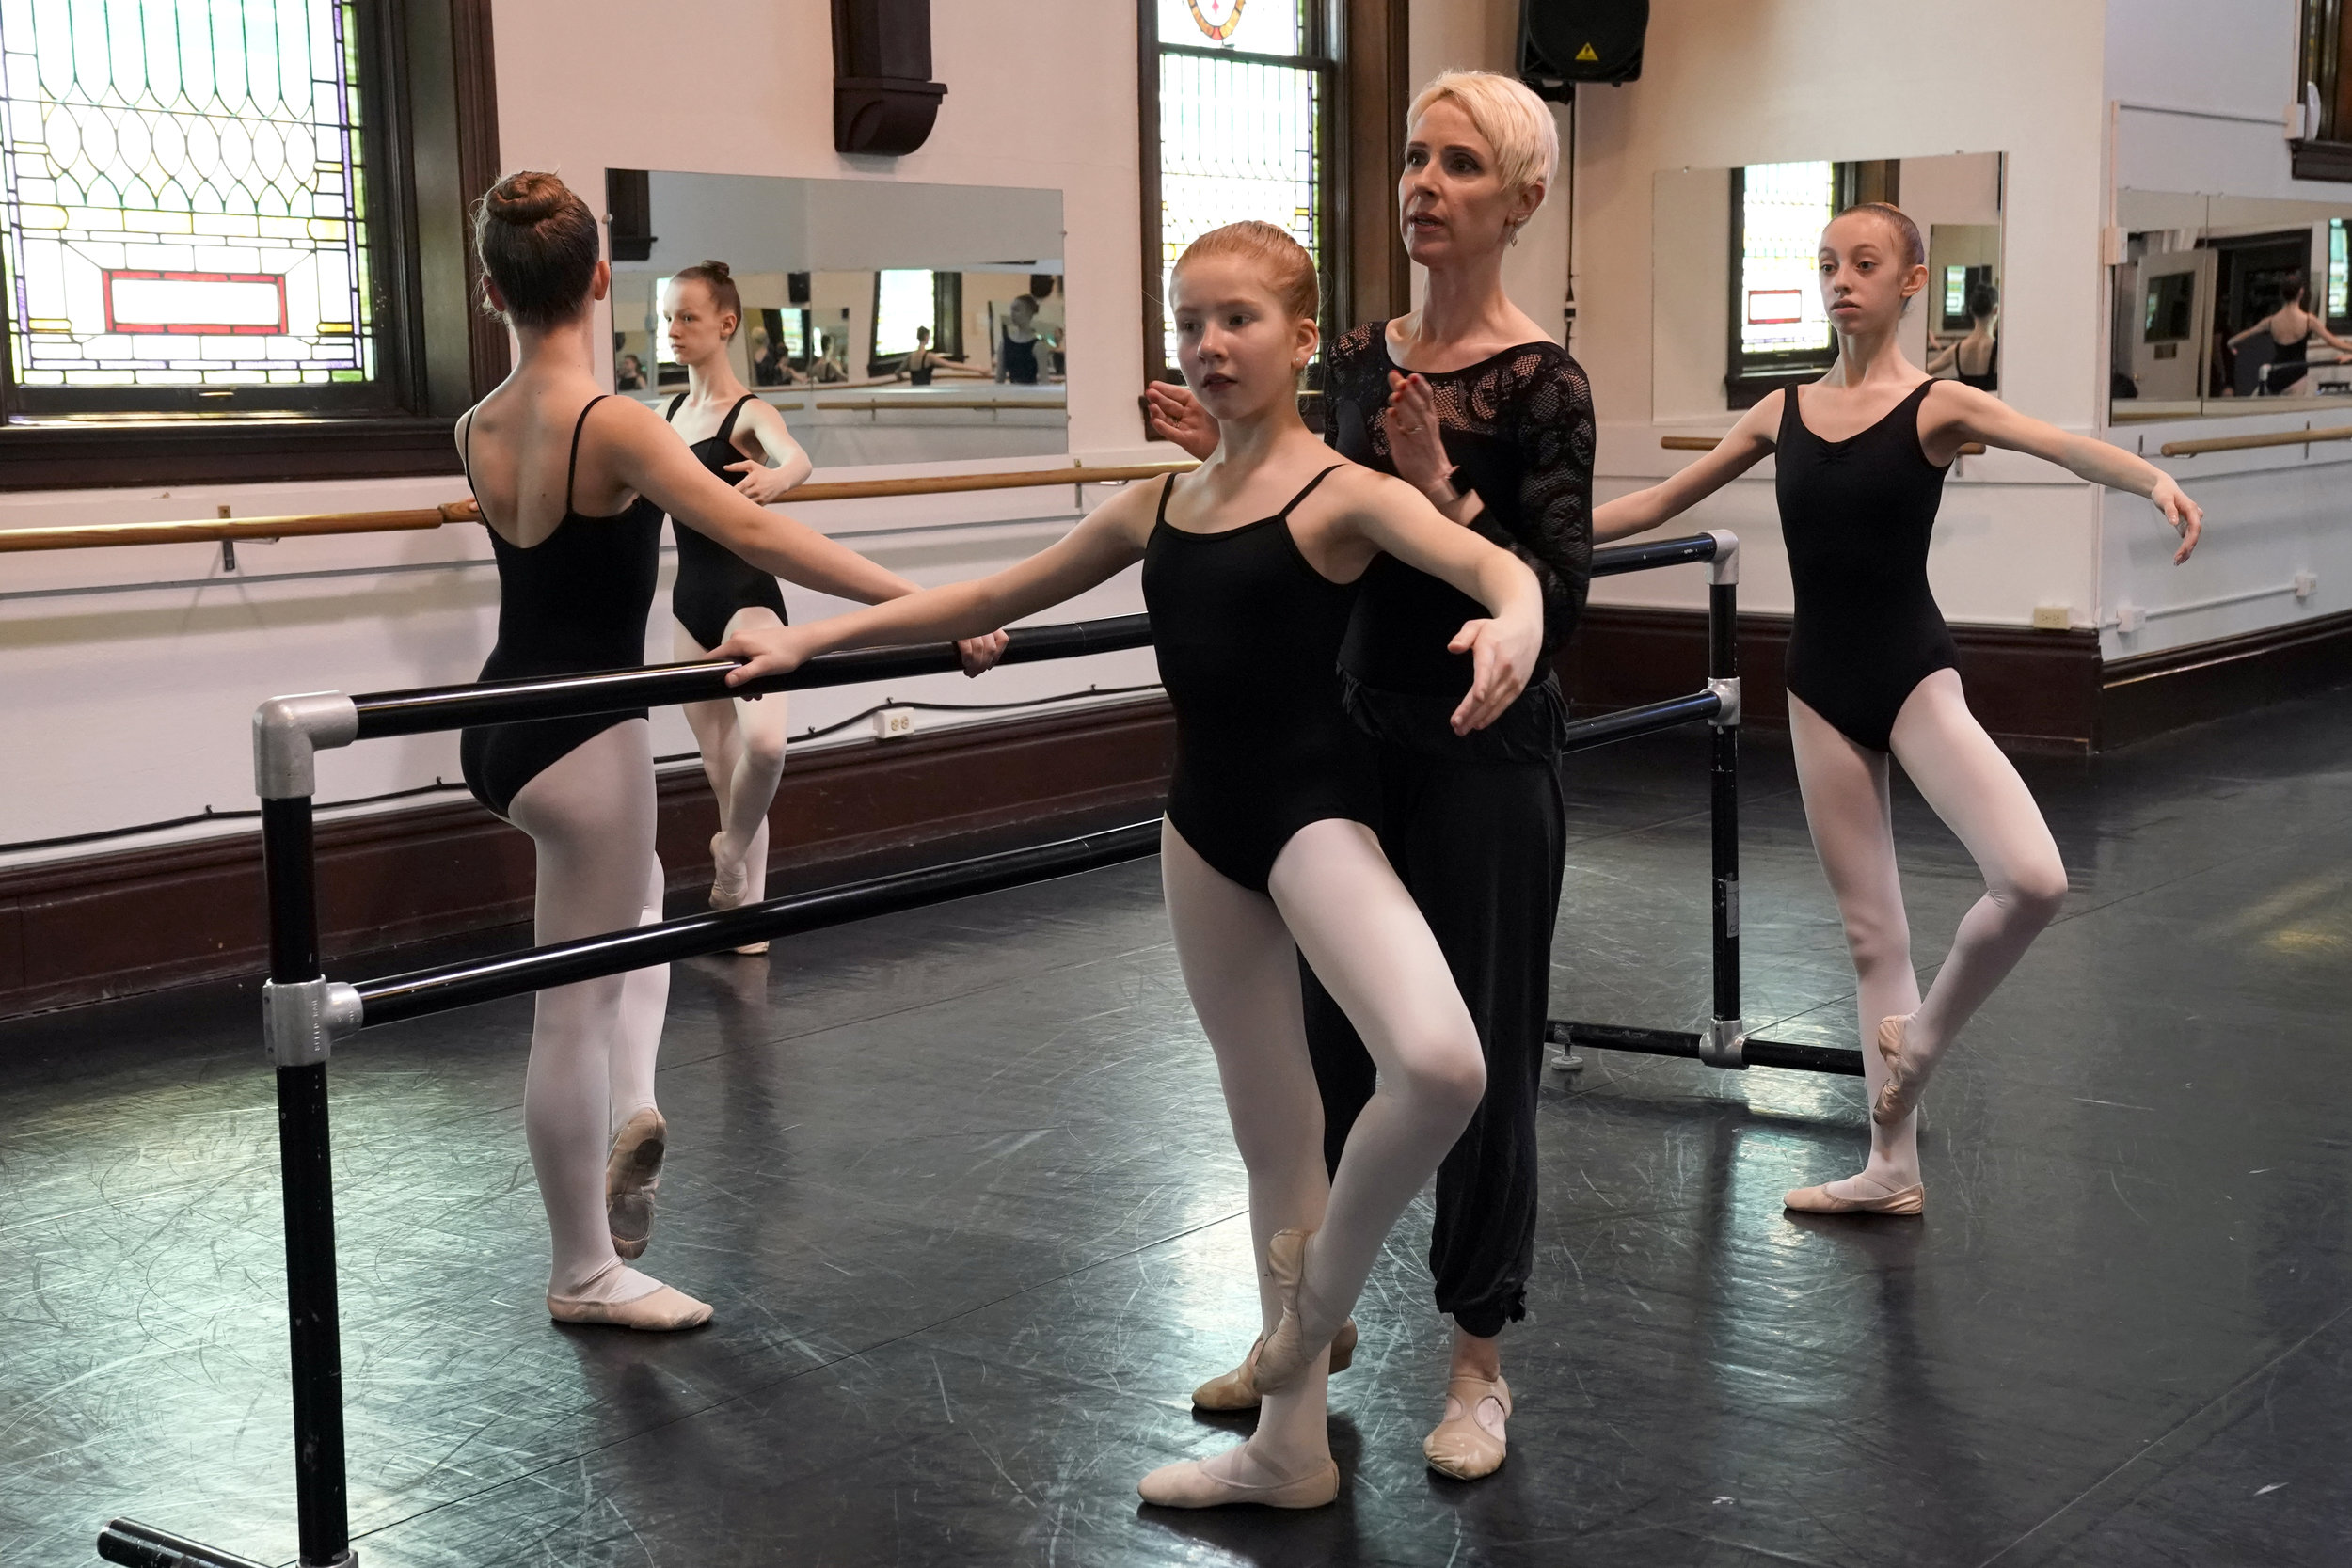 Our Story - For over 30 years, PRB has been a leader in dance education